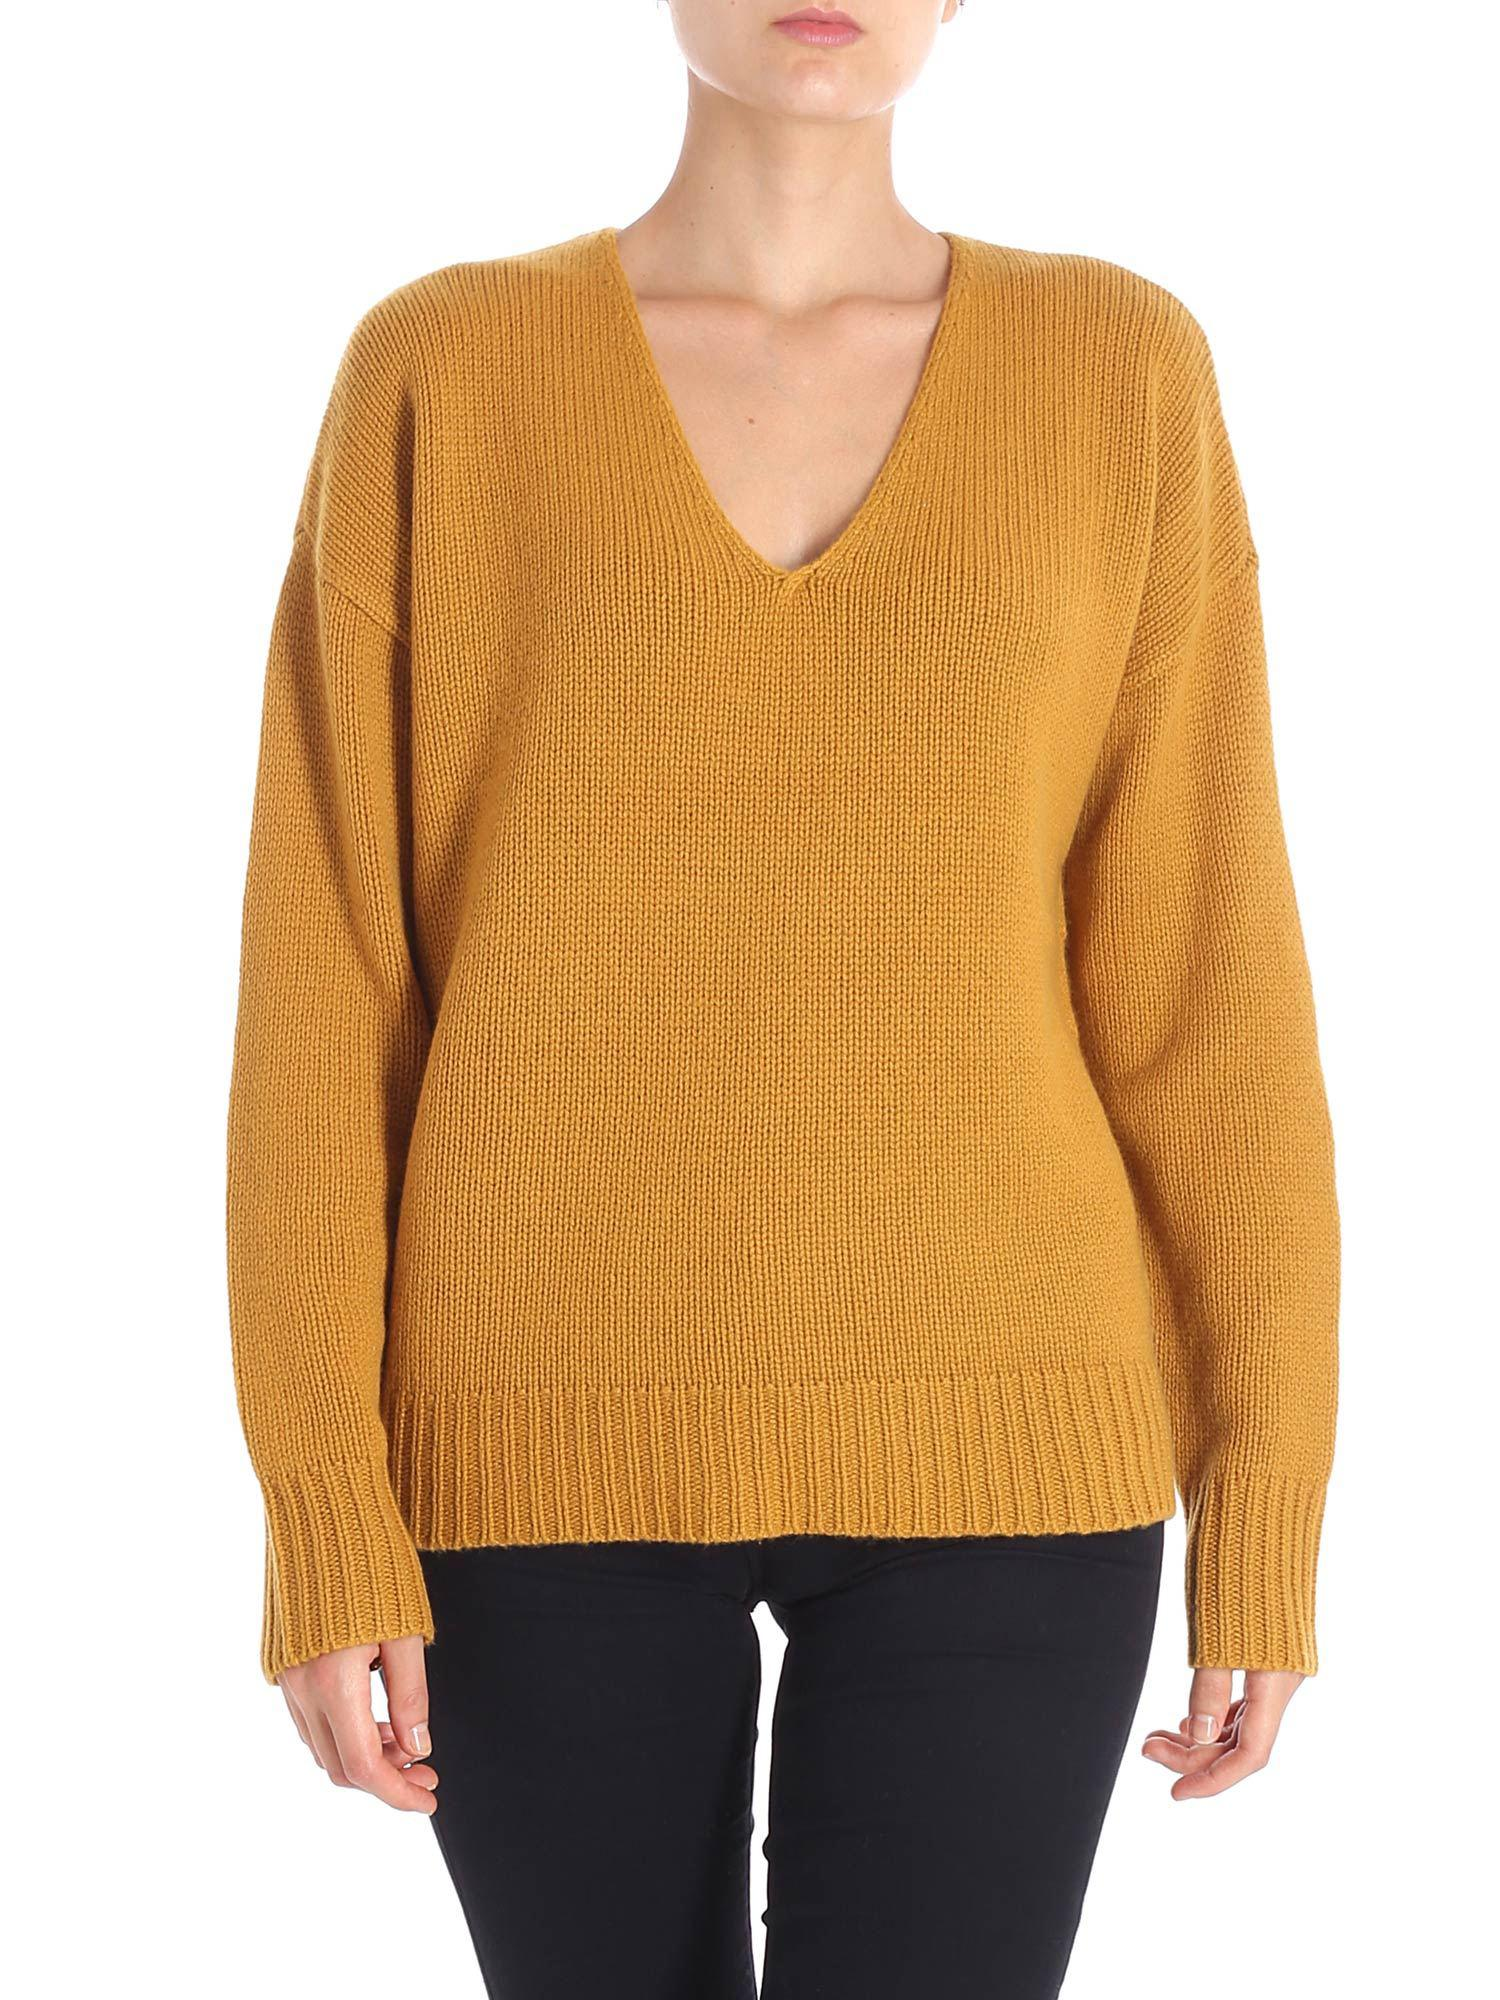 2d1e43a150 Theory - Multicolor Camel Colored Corduroy Relaxed Pullover - Lyst. View  fullscreen